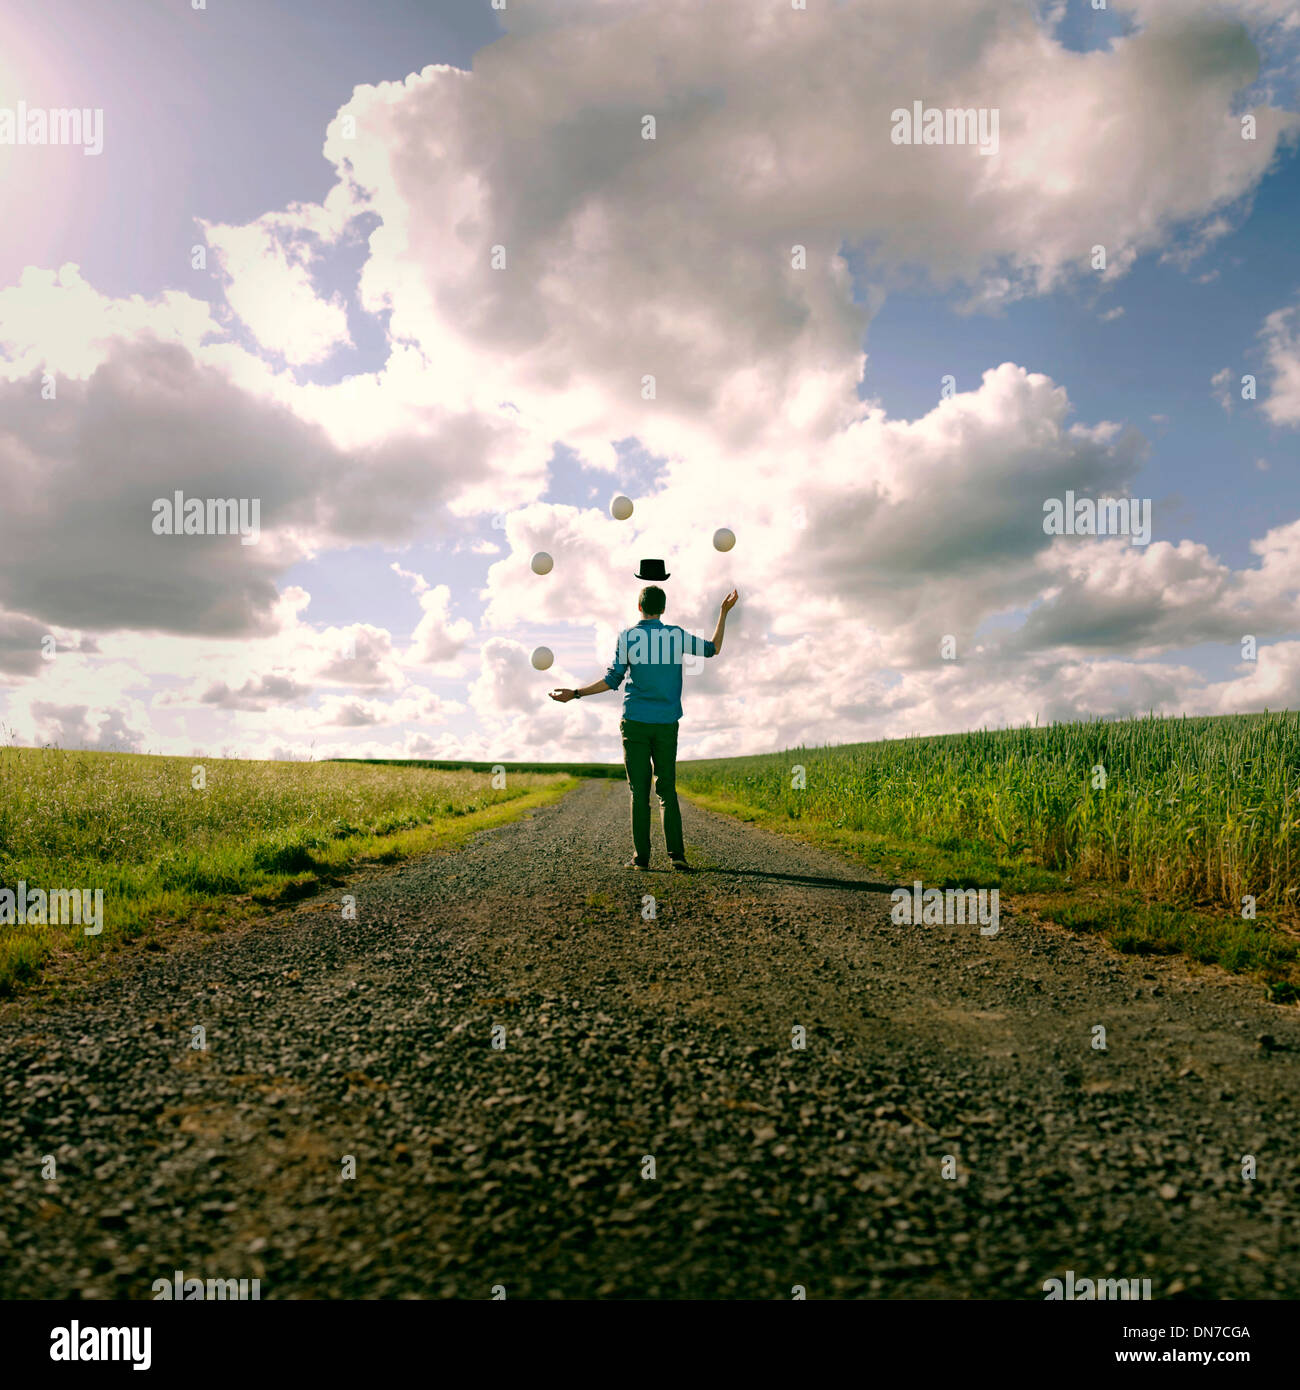 Young man with floating hat juggling in the field - Stock Image